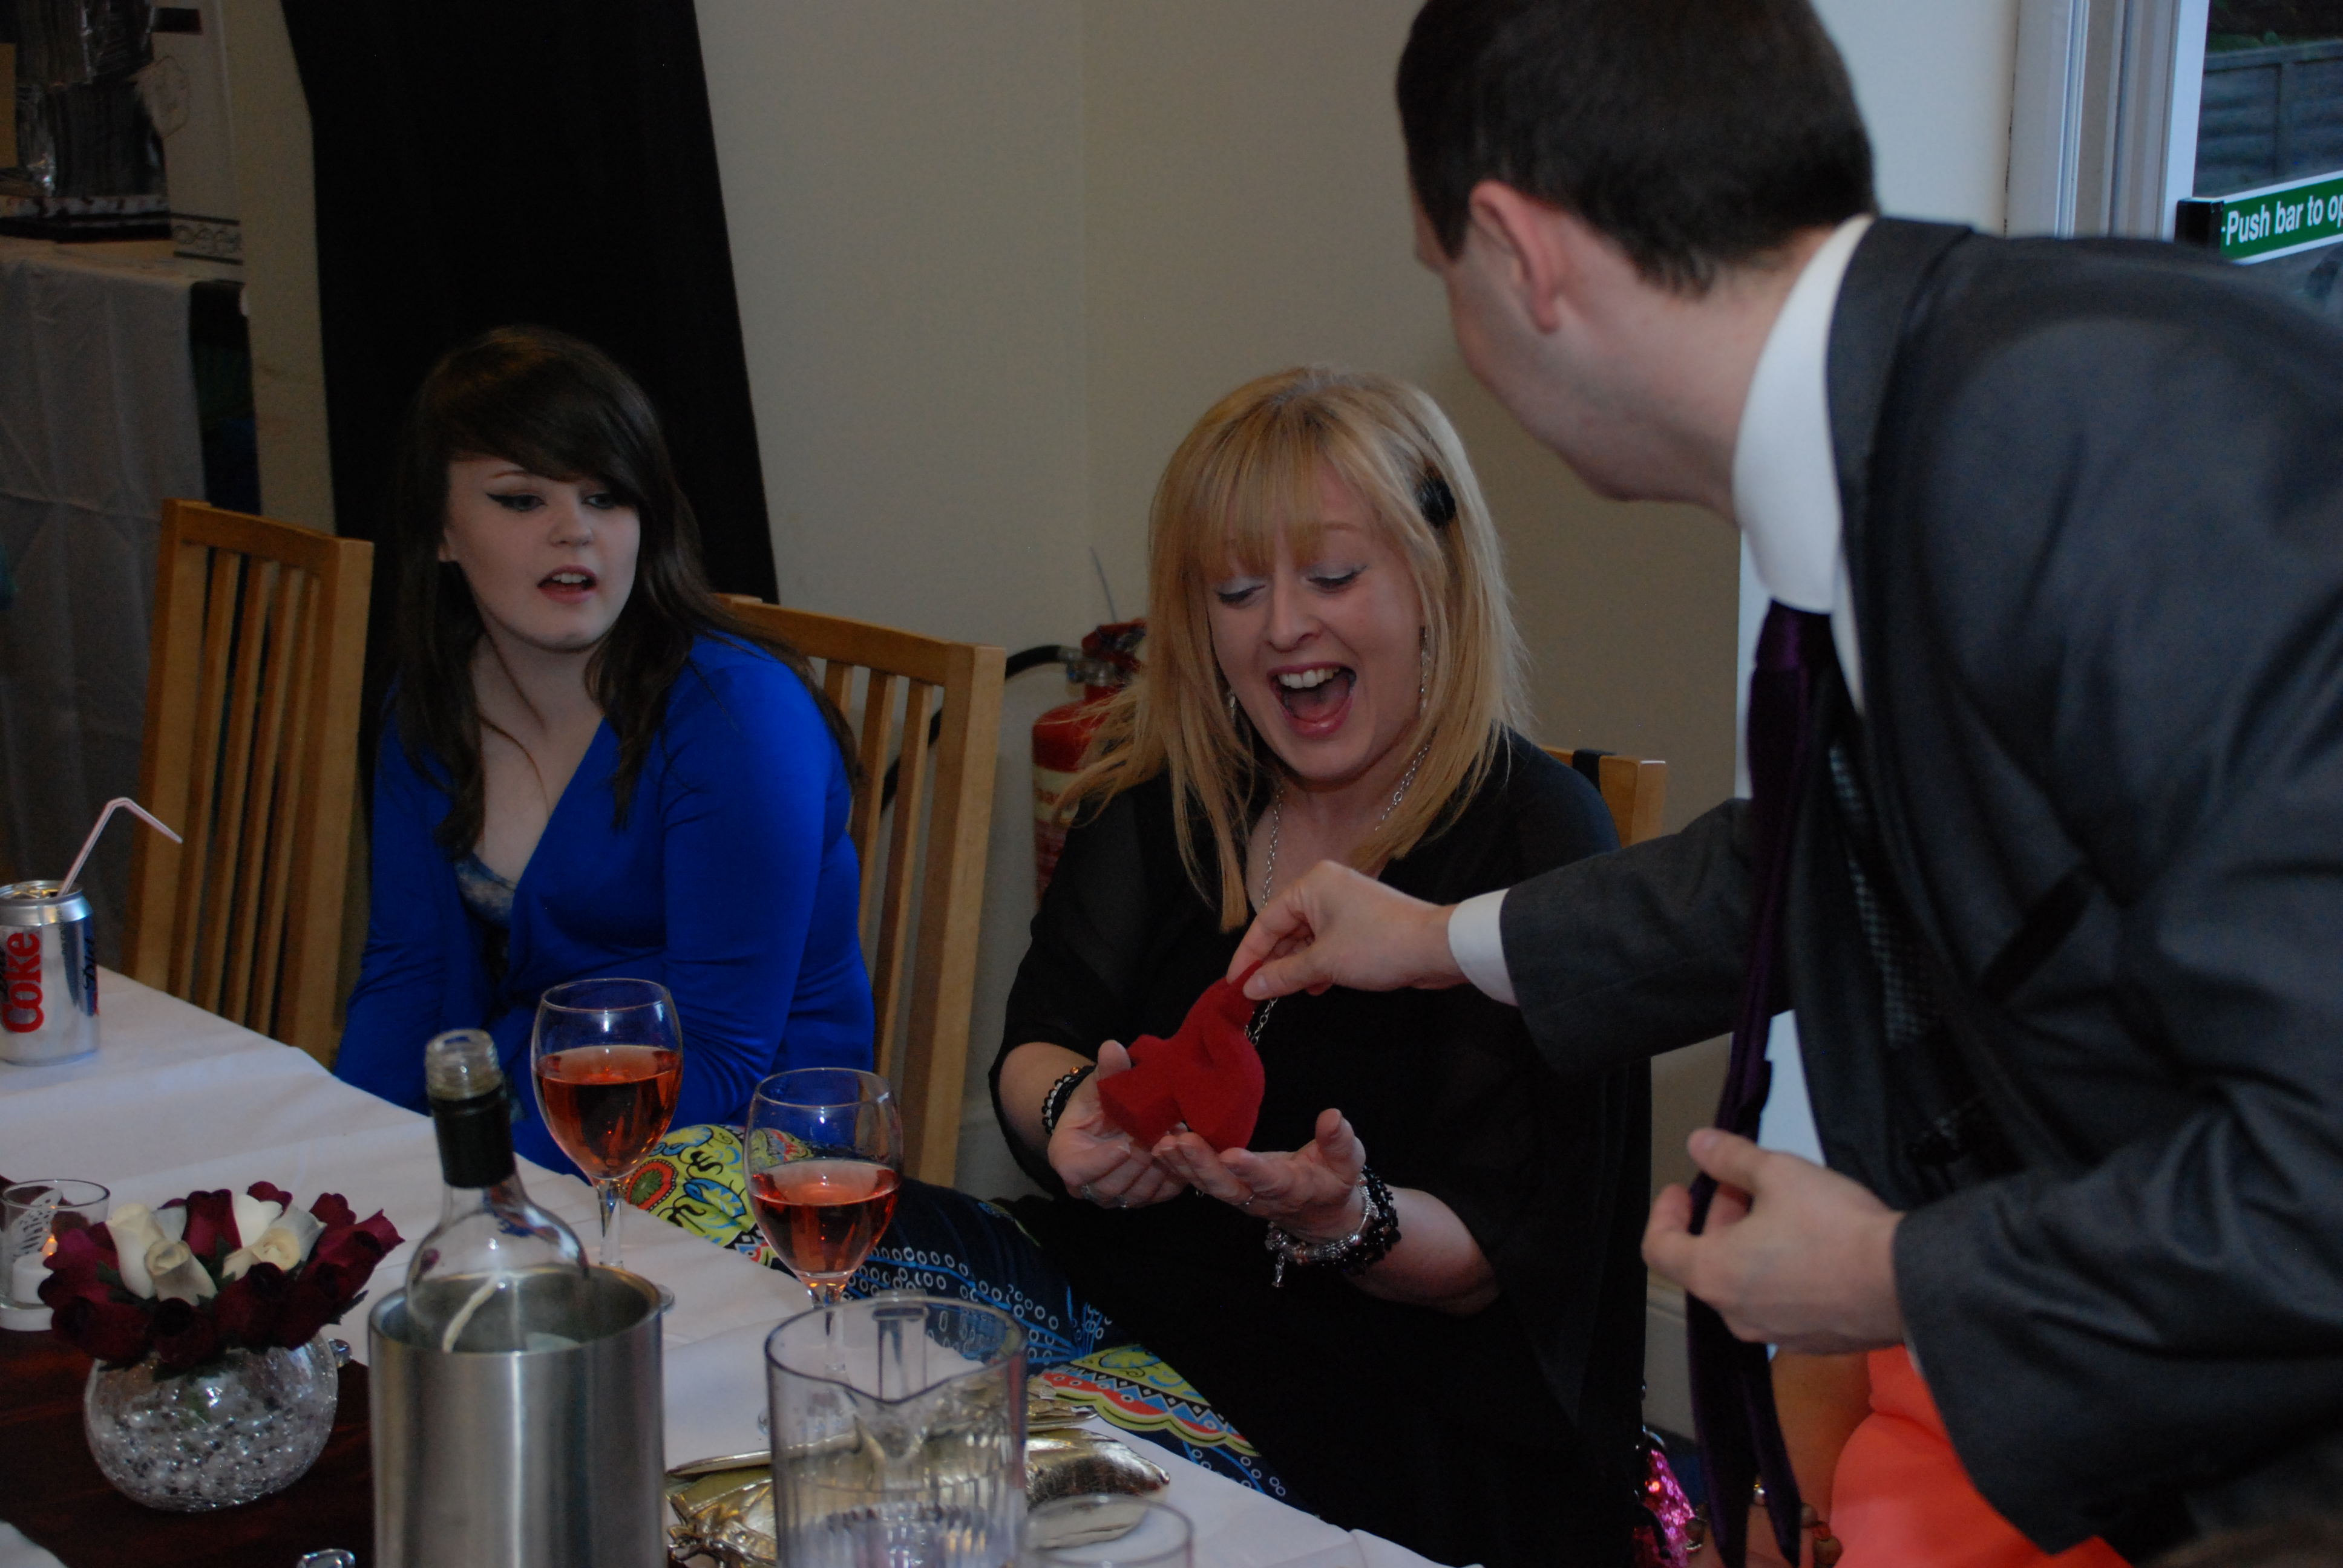 Kilmarnock Magician Steven Blair performing close-up magic for a group at an event either a Wedding or Party.